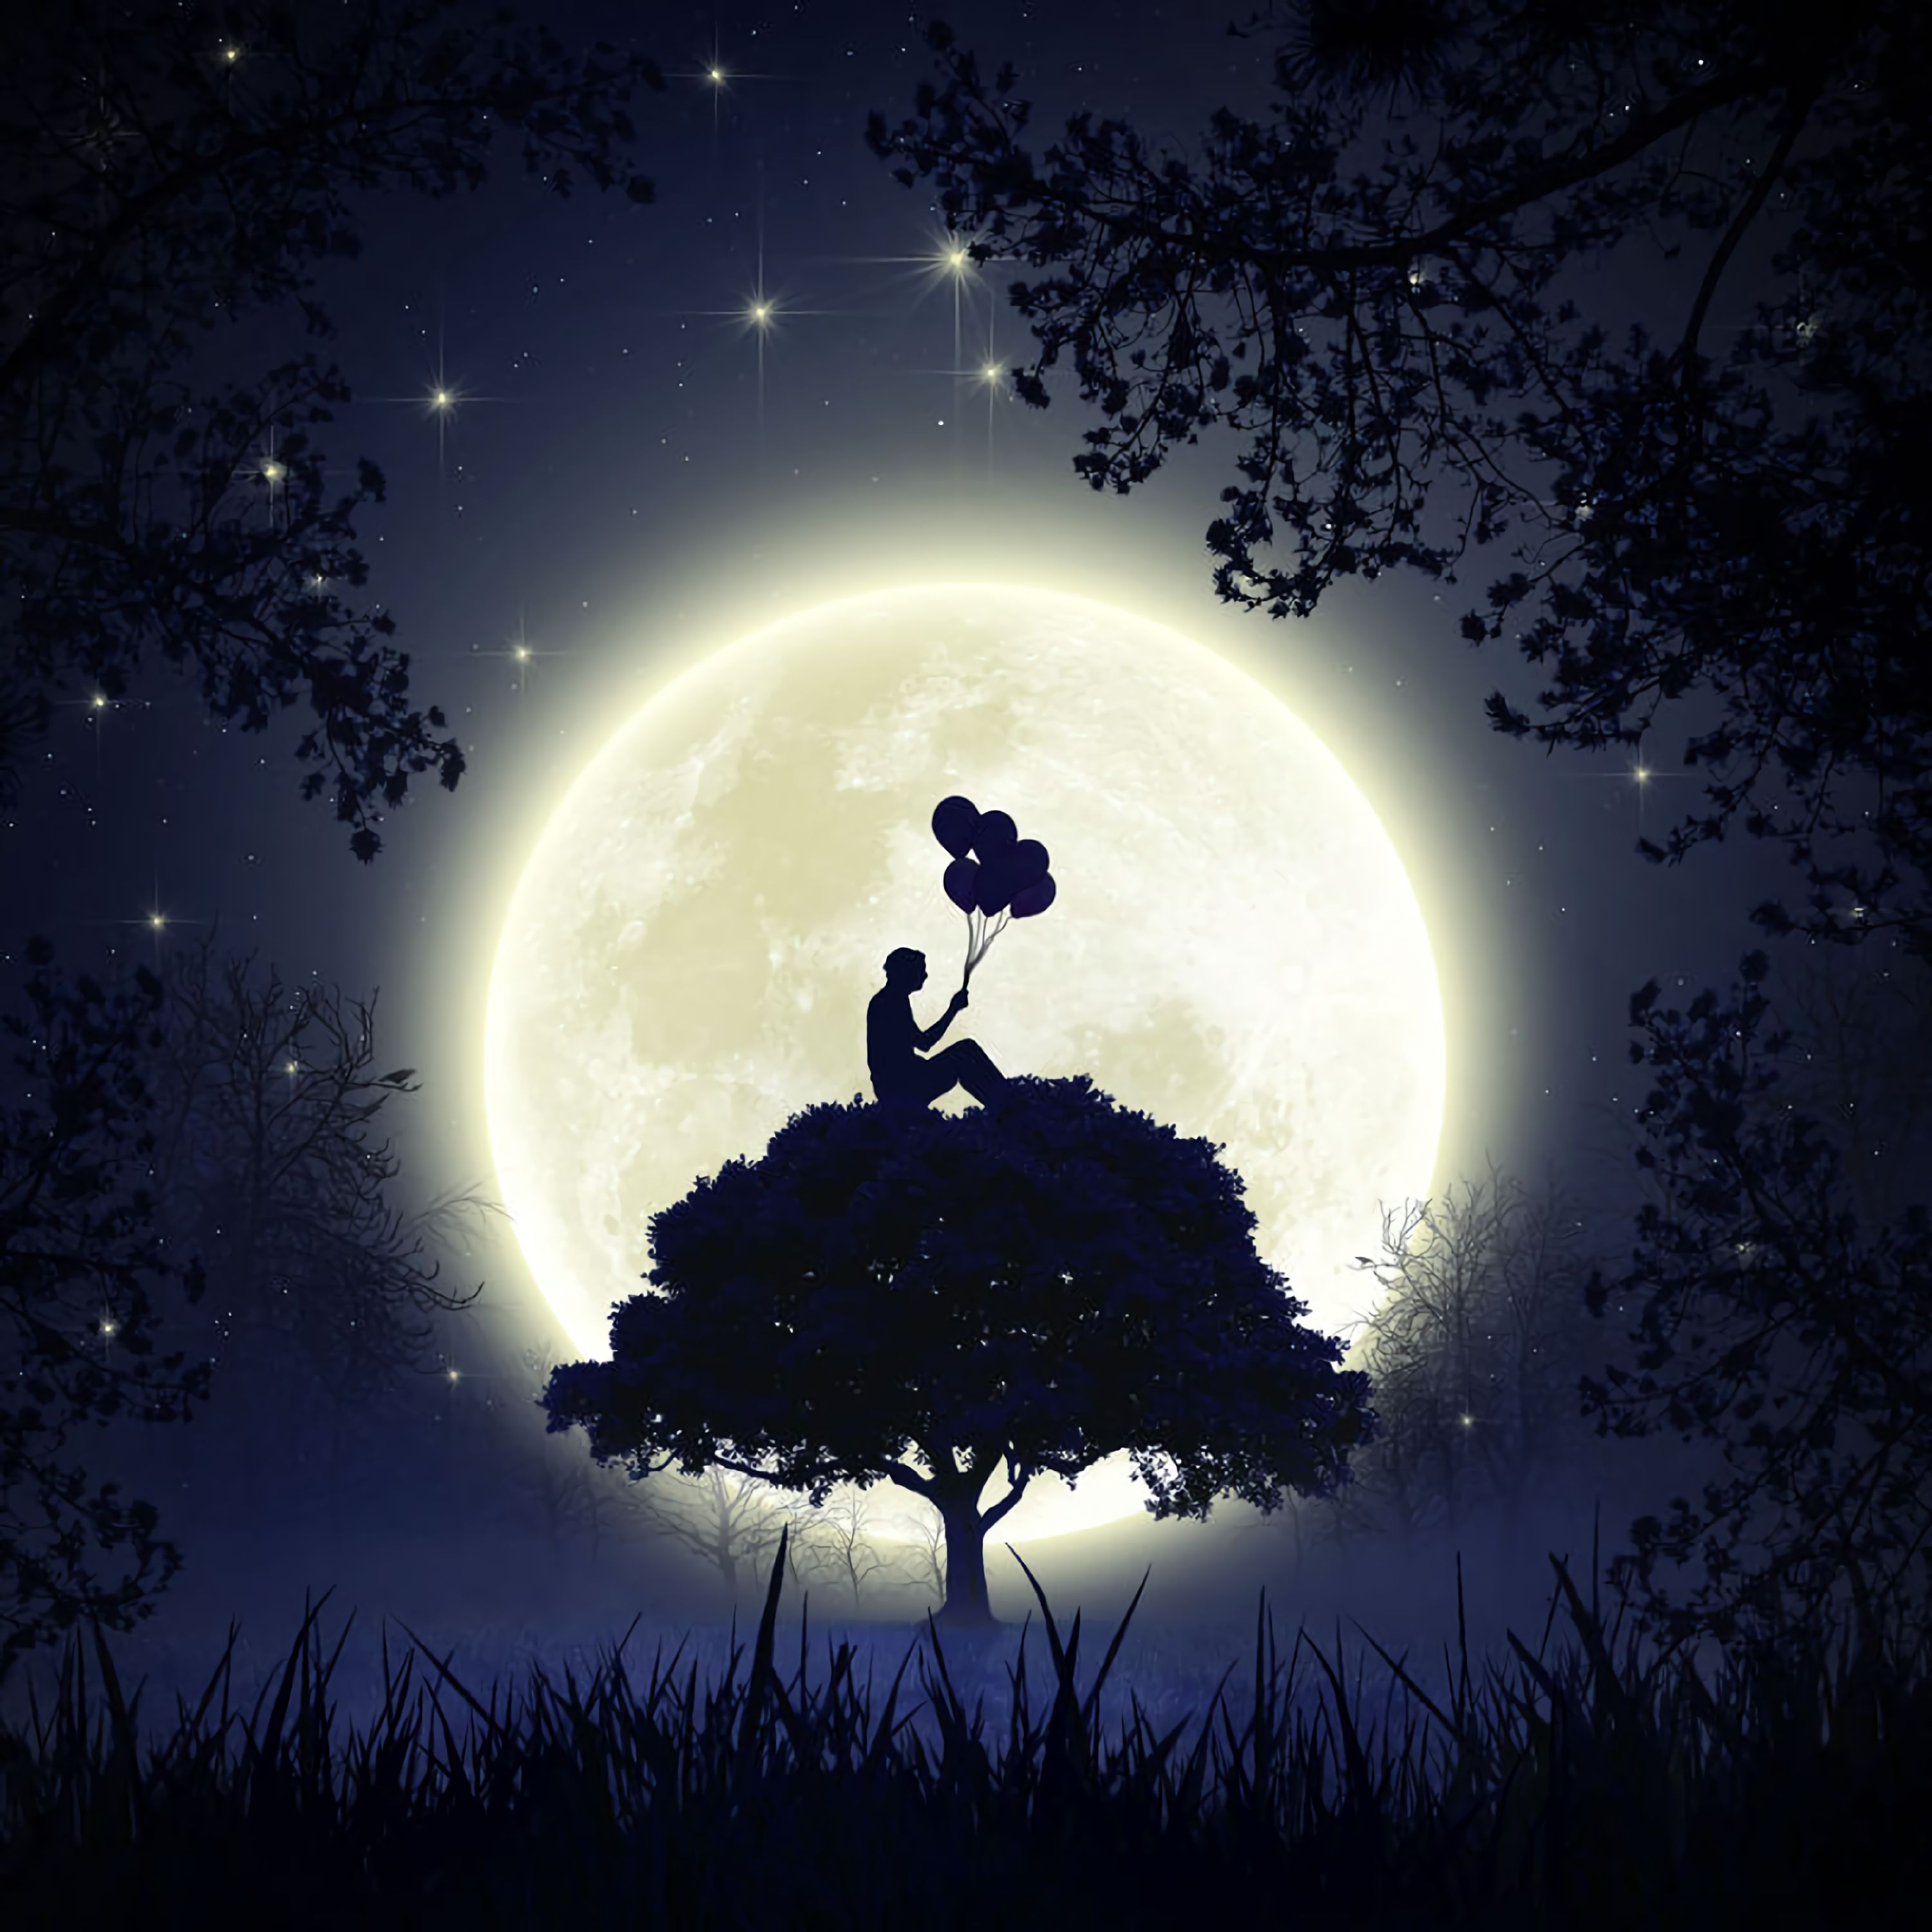 107012 download wallpaper Art, Moon, Balloons, Dark, Silhouette, Wood, Tree, Full Moon, Air Balloons screensavers and pictures for free